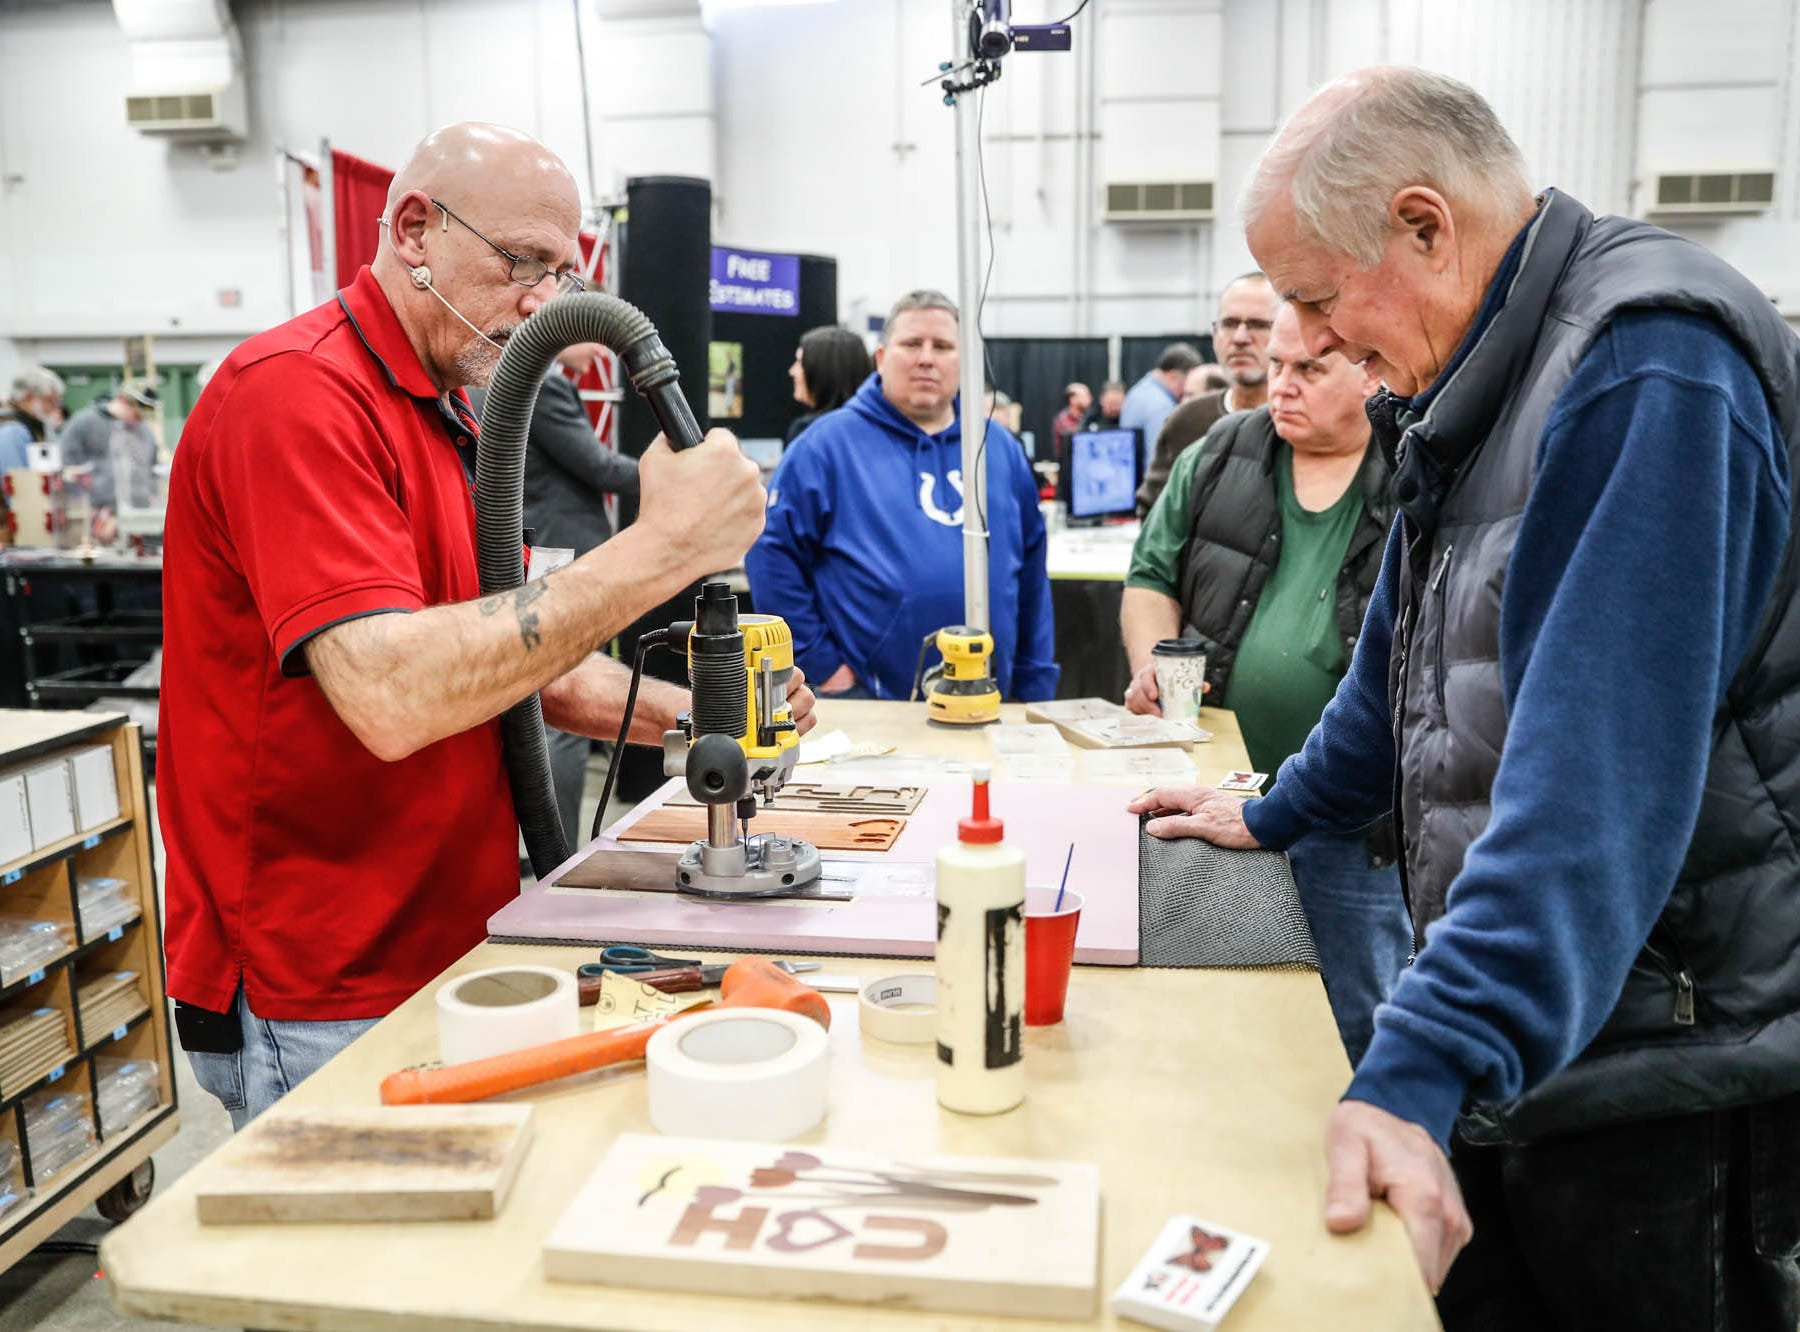 Wood worker, Larry Tarter does a router demo during a Wood Working Show at the Indiana State Fairgrounds in Indianapolis on Sunday, Feb. 3, 2019.